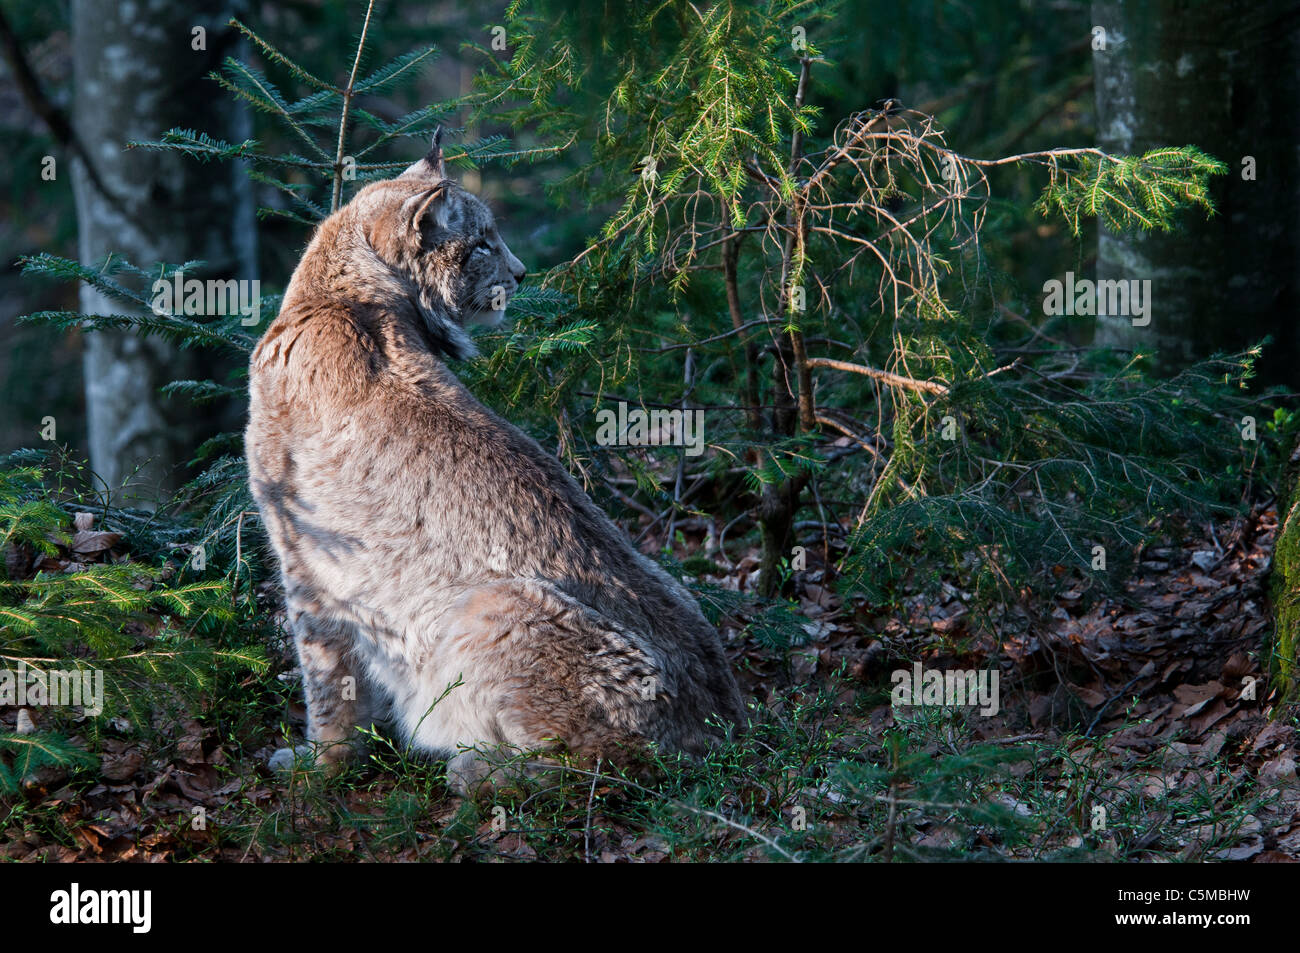 Eurasian Lynx, Lynx lynx, in a natural environment Stock Photo